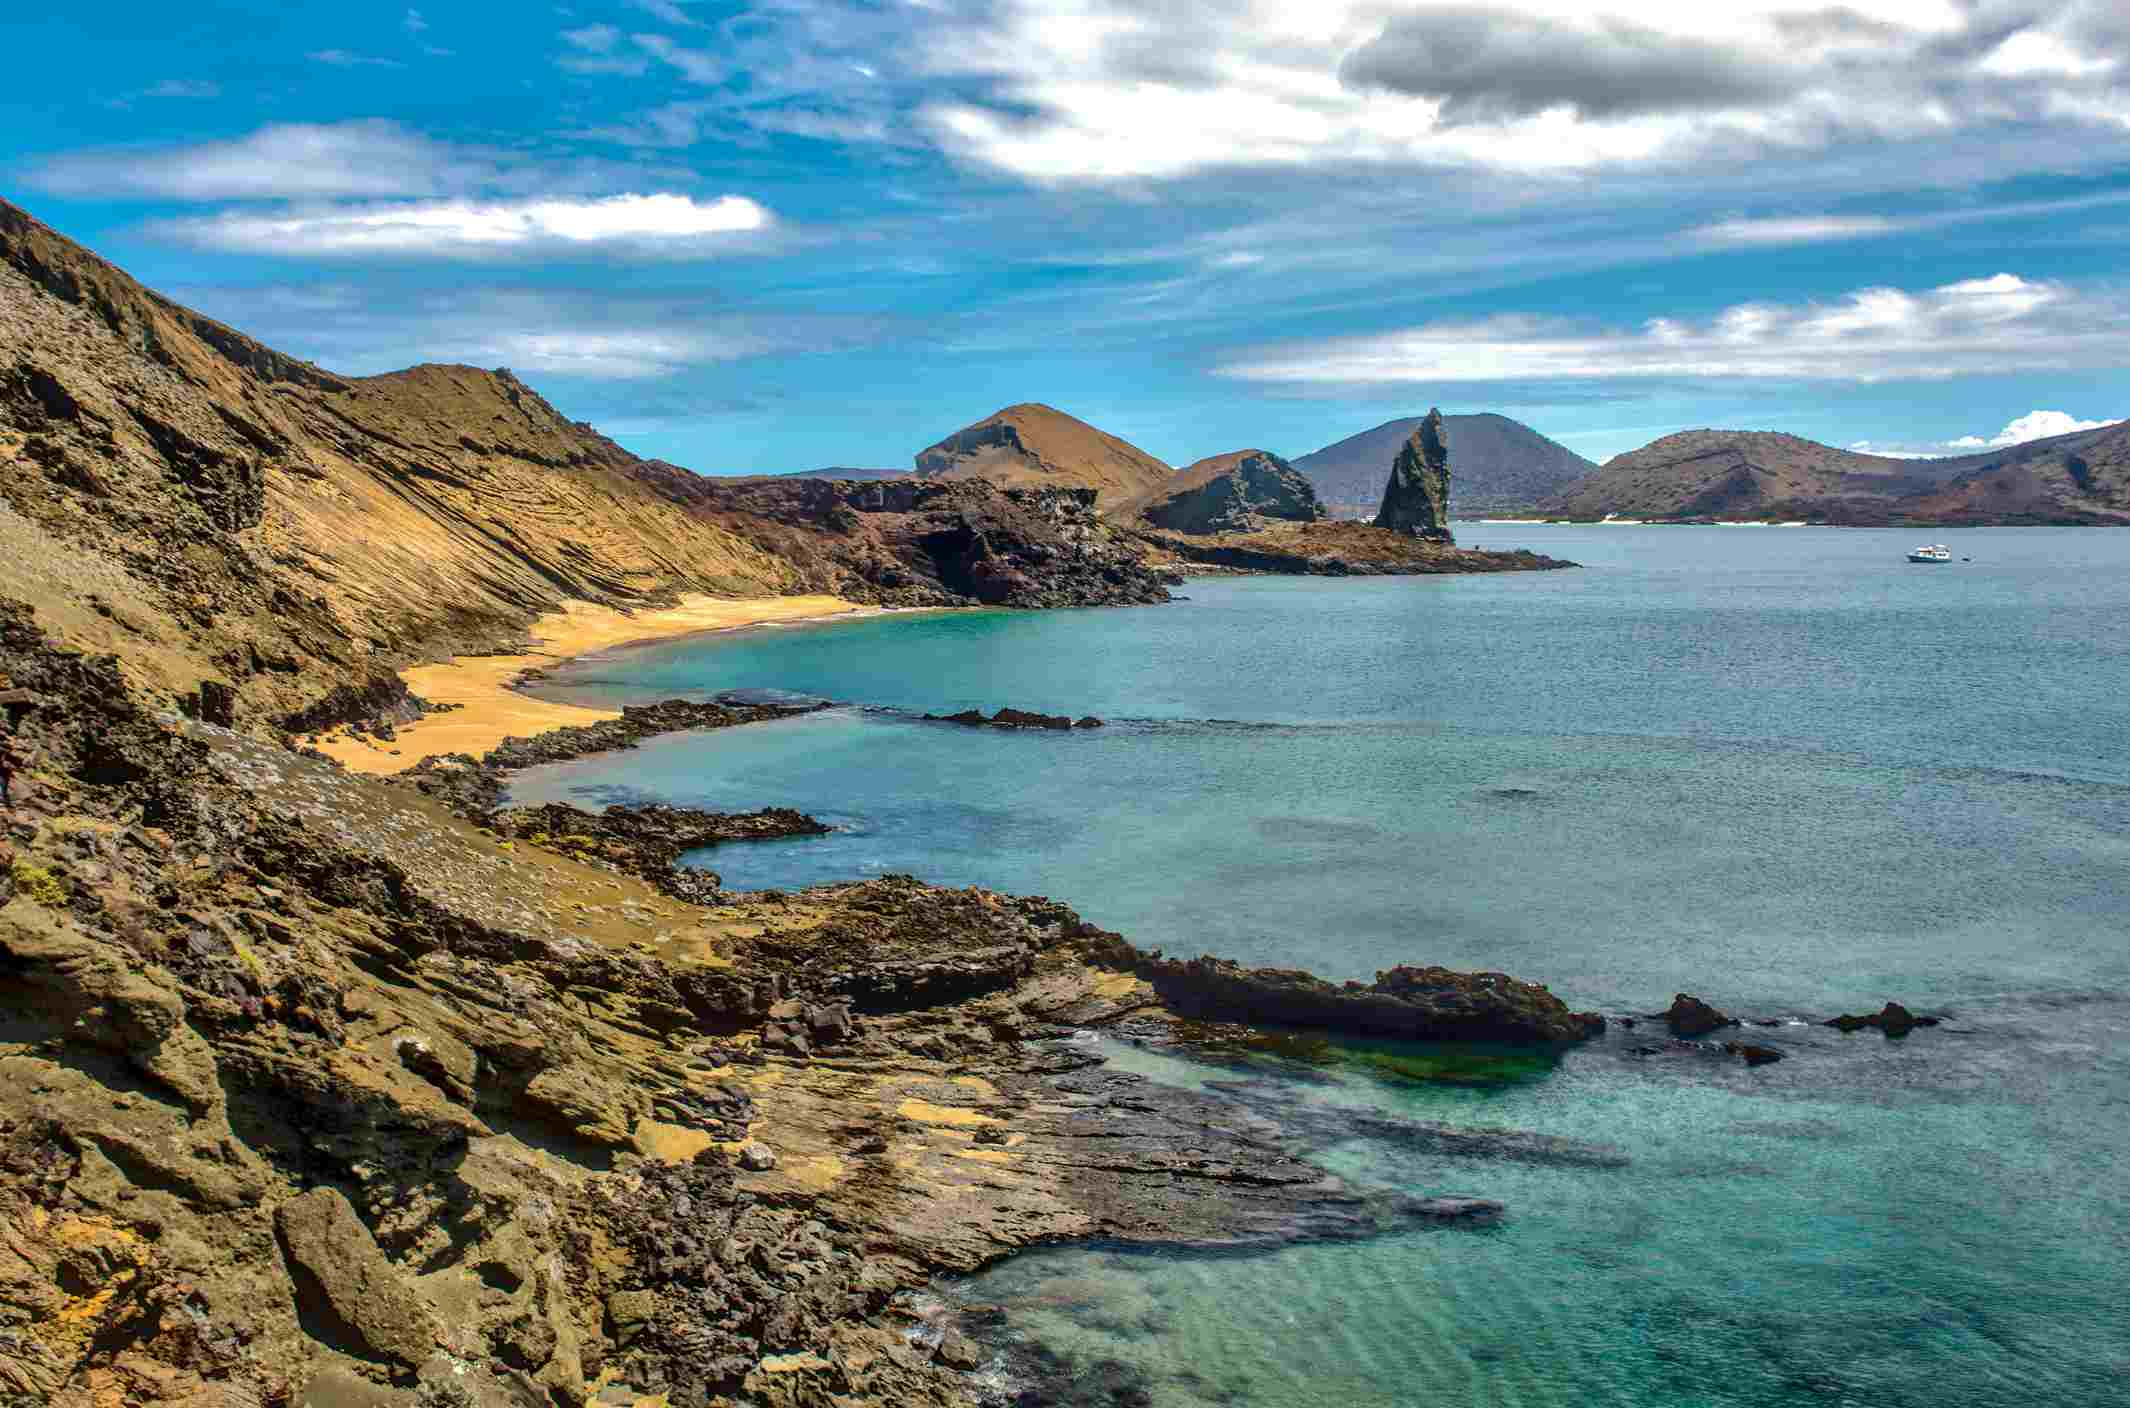 Bartolomé Island is a volcanic islet in the Galápagos Islands group